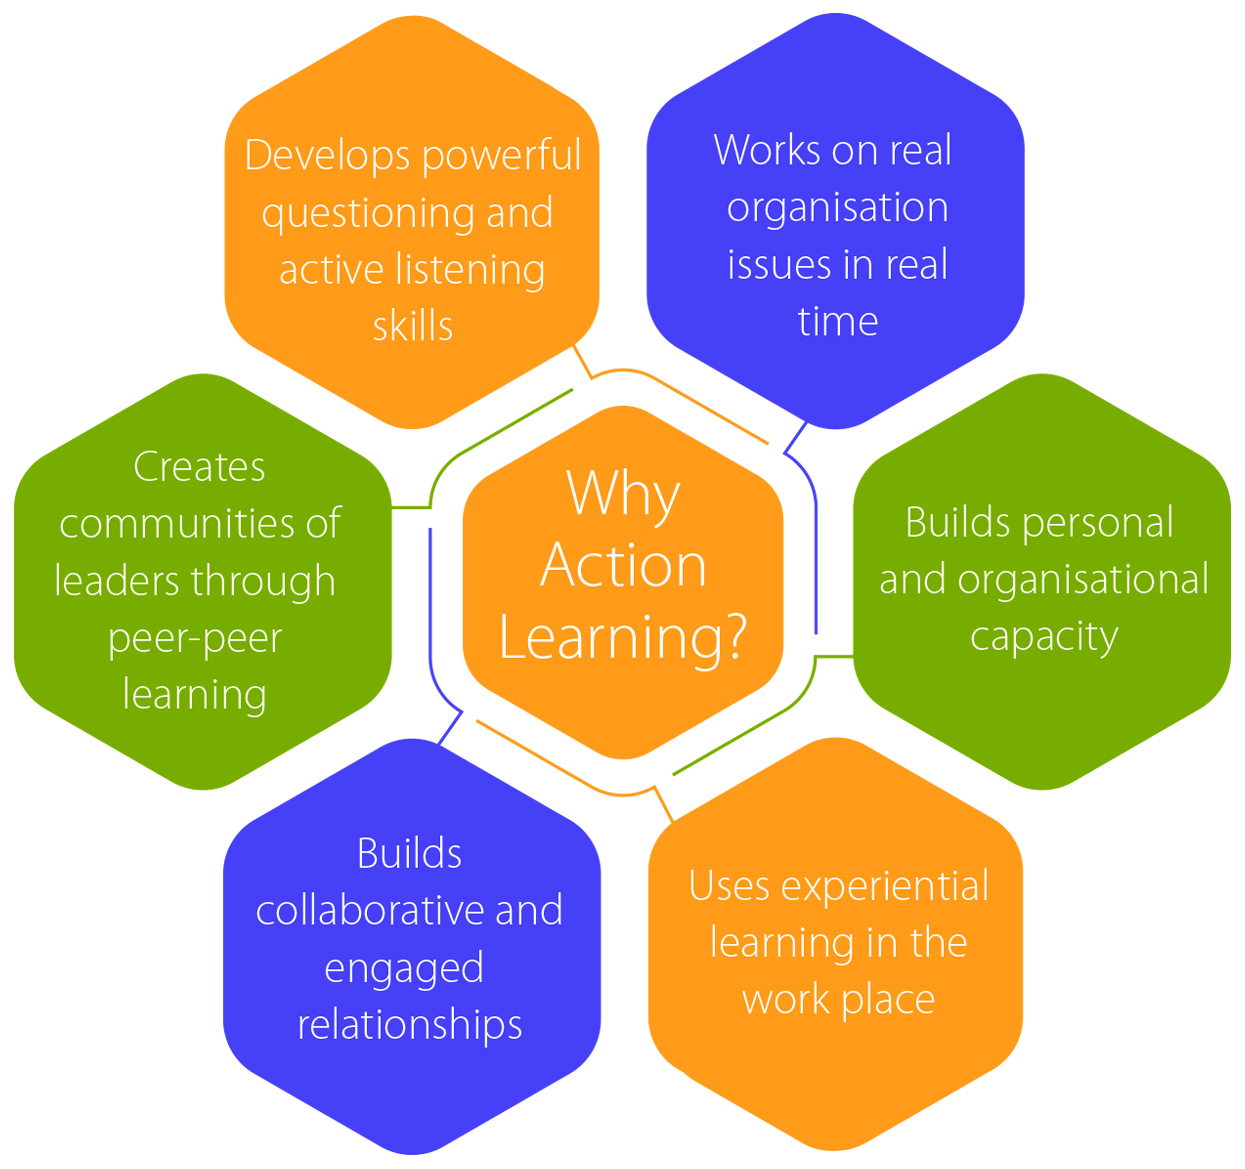 Why Action Learning